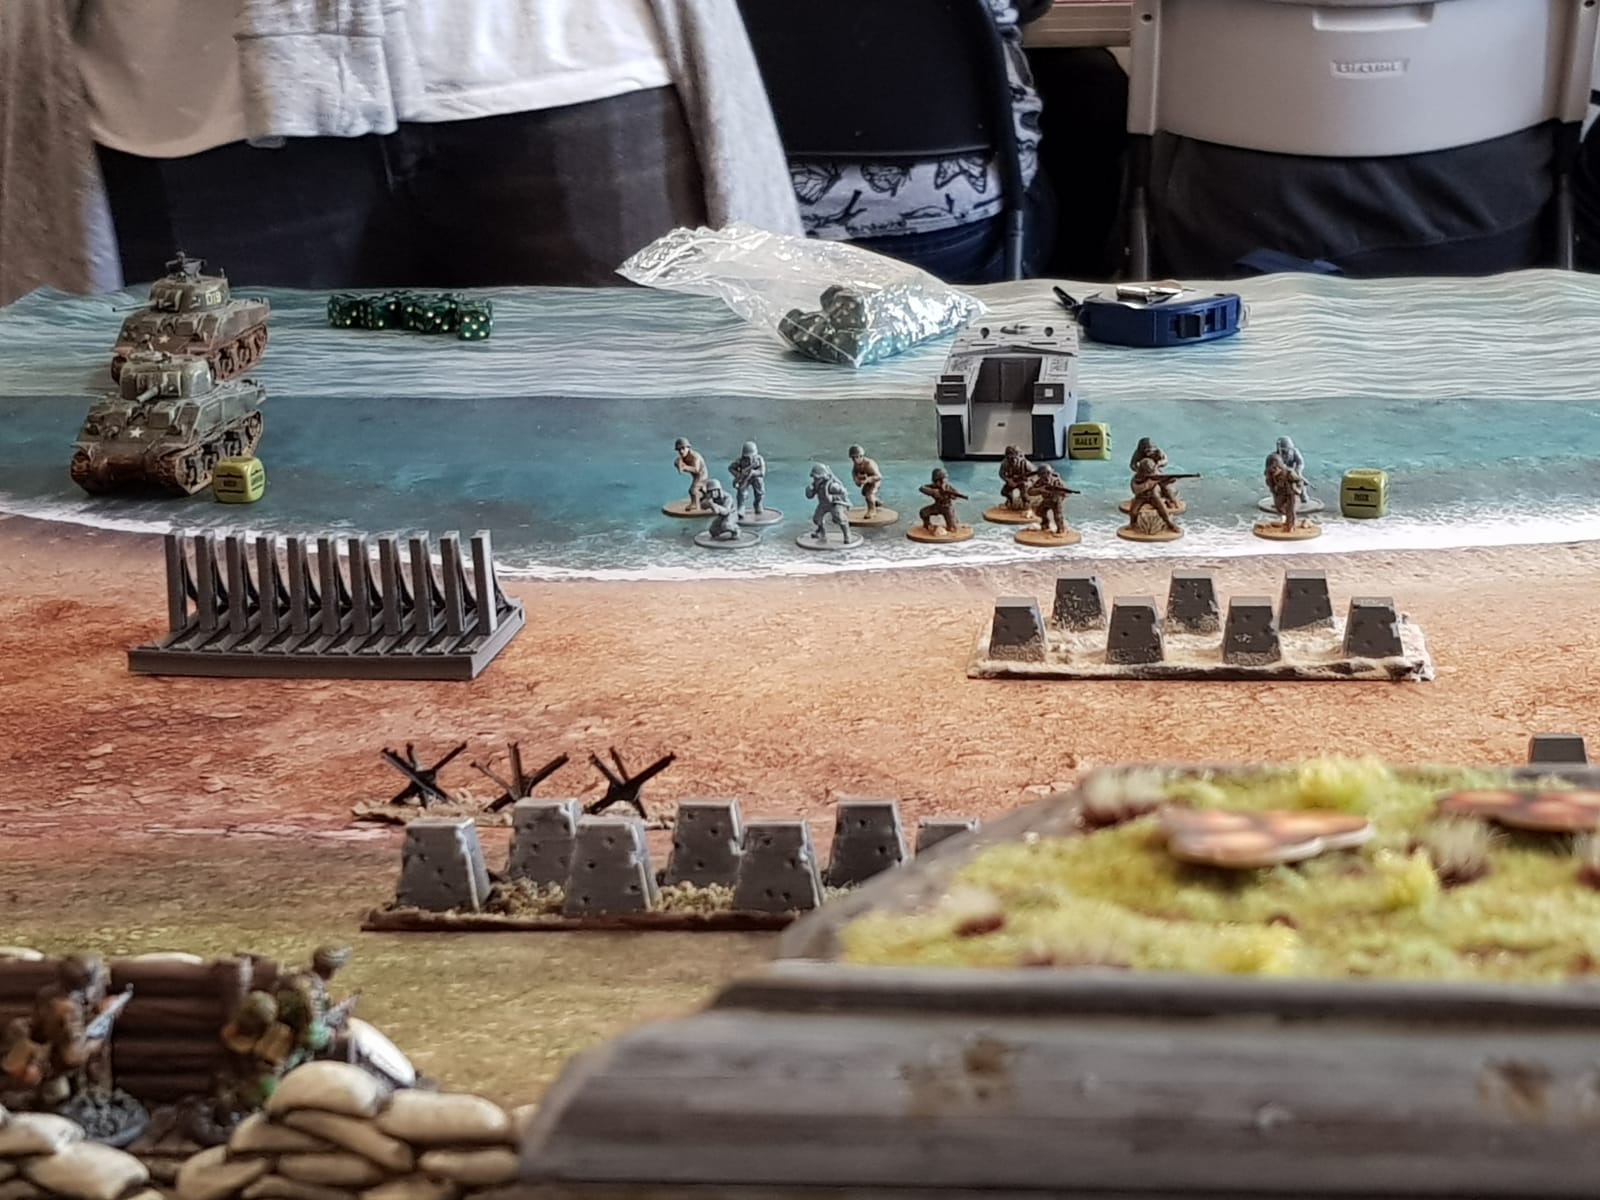 The drop boys versus 3FJD in a fierce infantry engagement